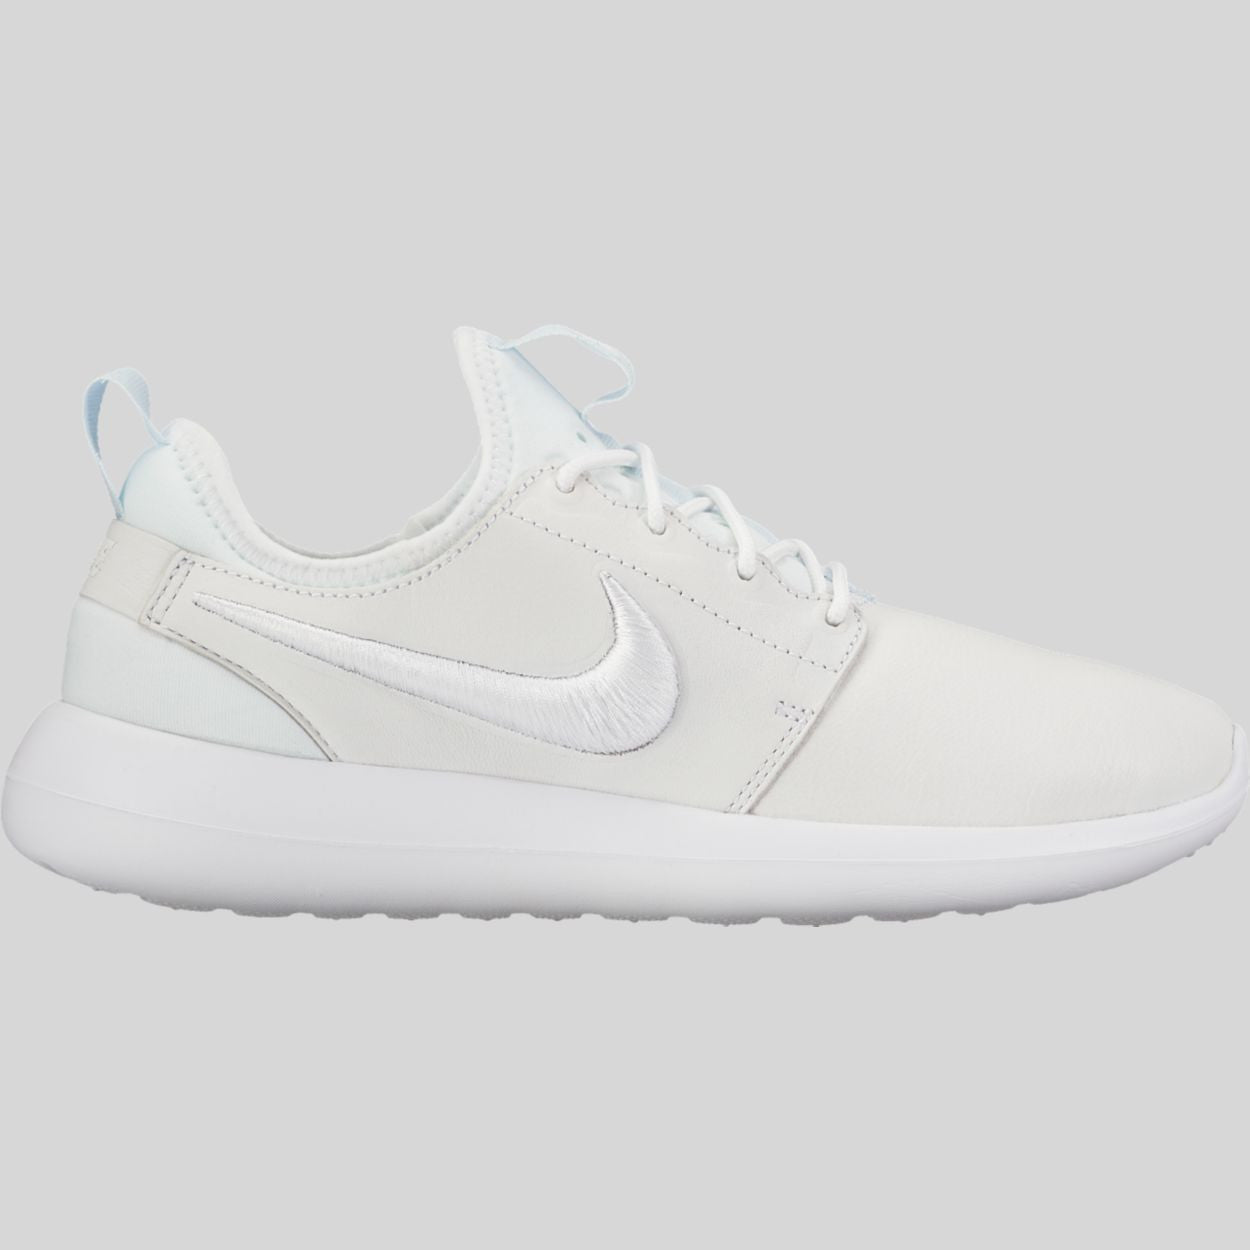 air bruin max si nike roshe run women Royal Ontario Museum